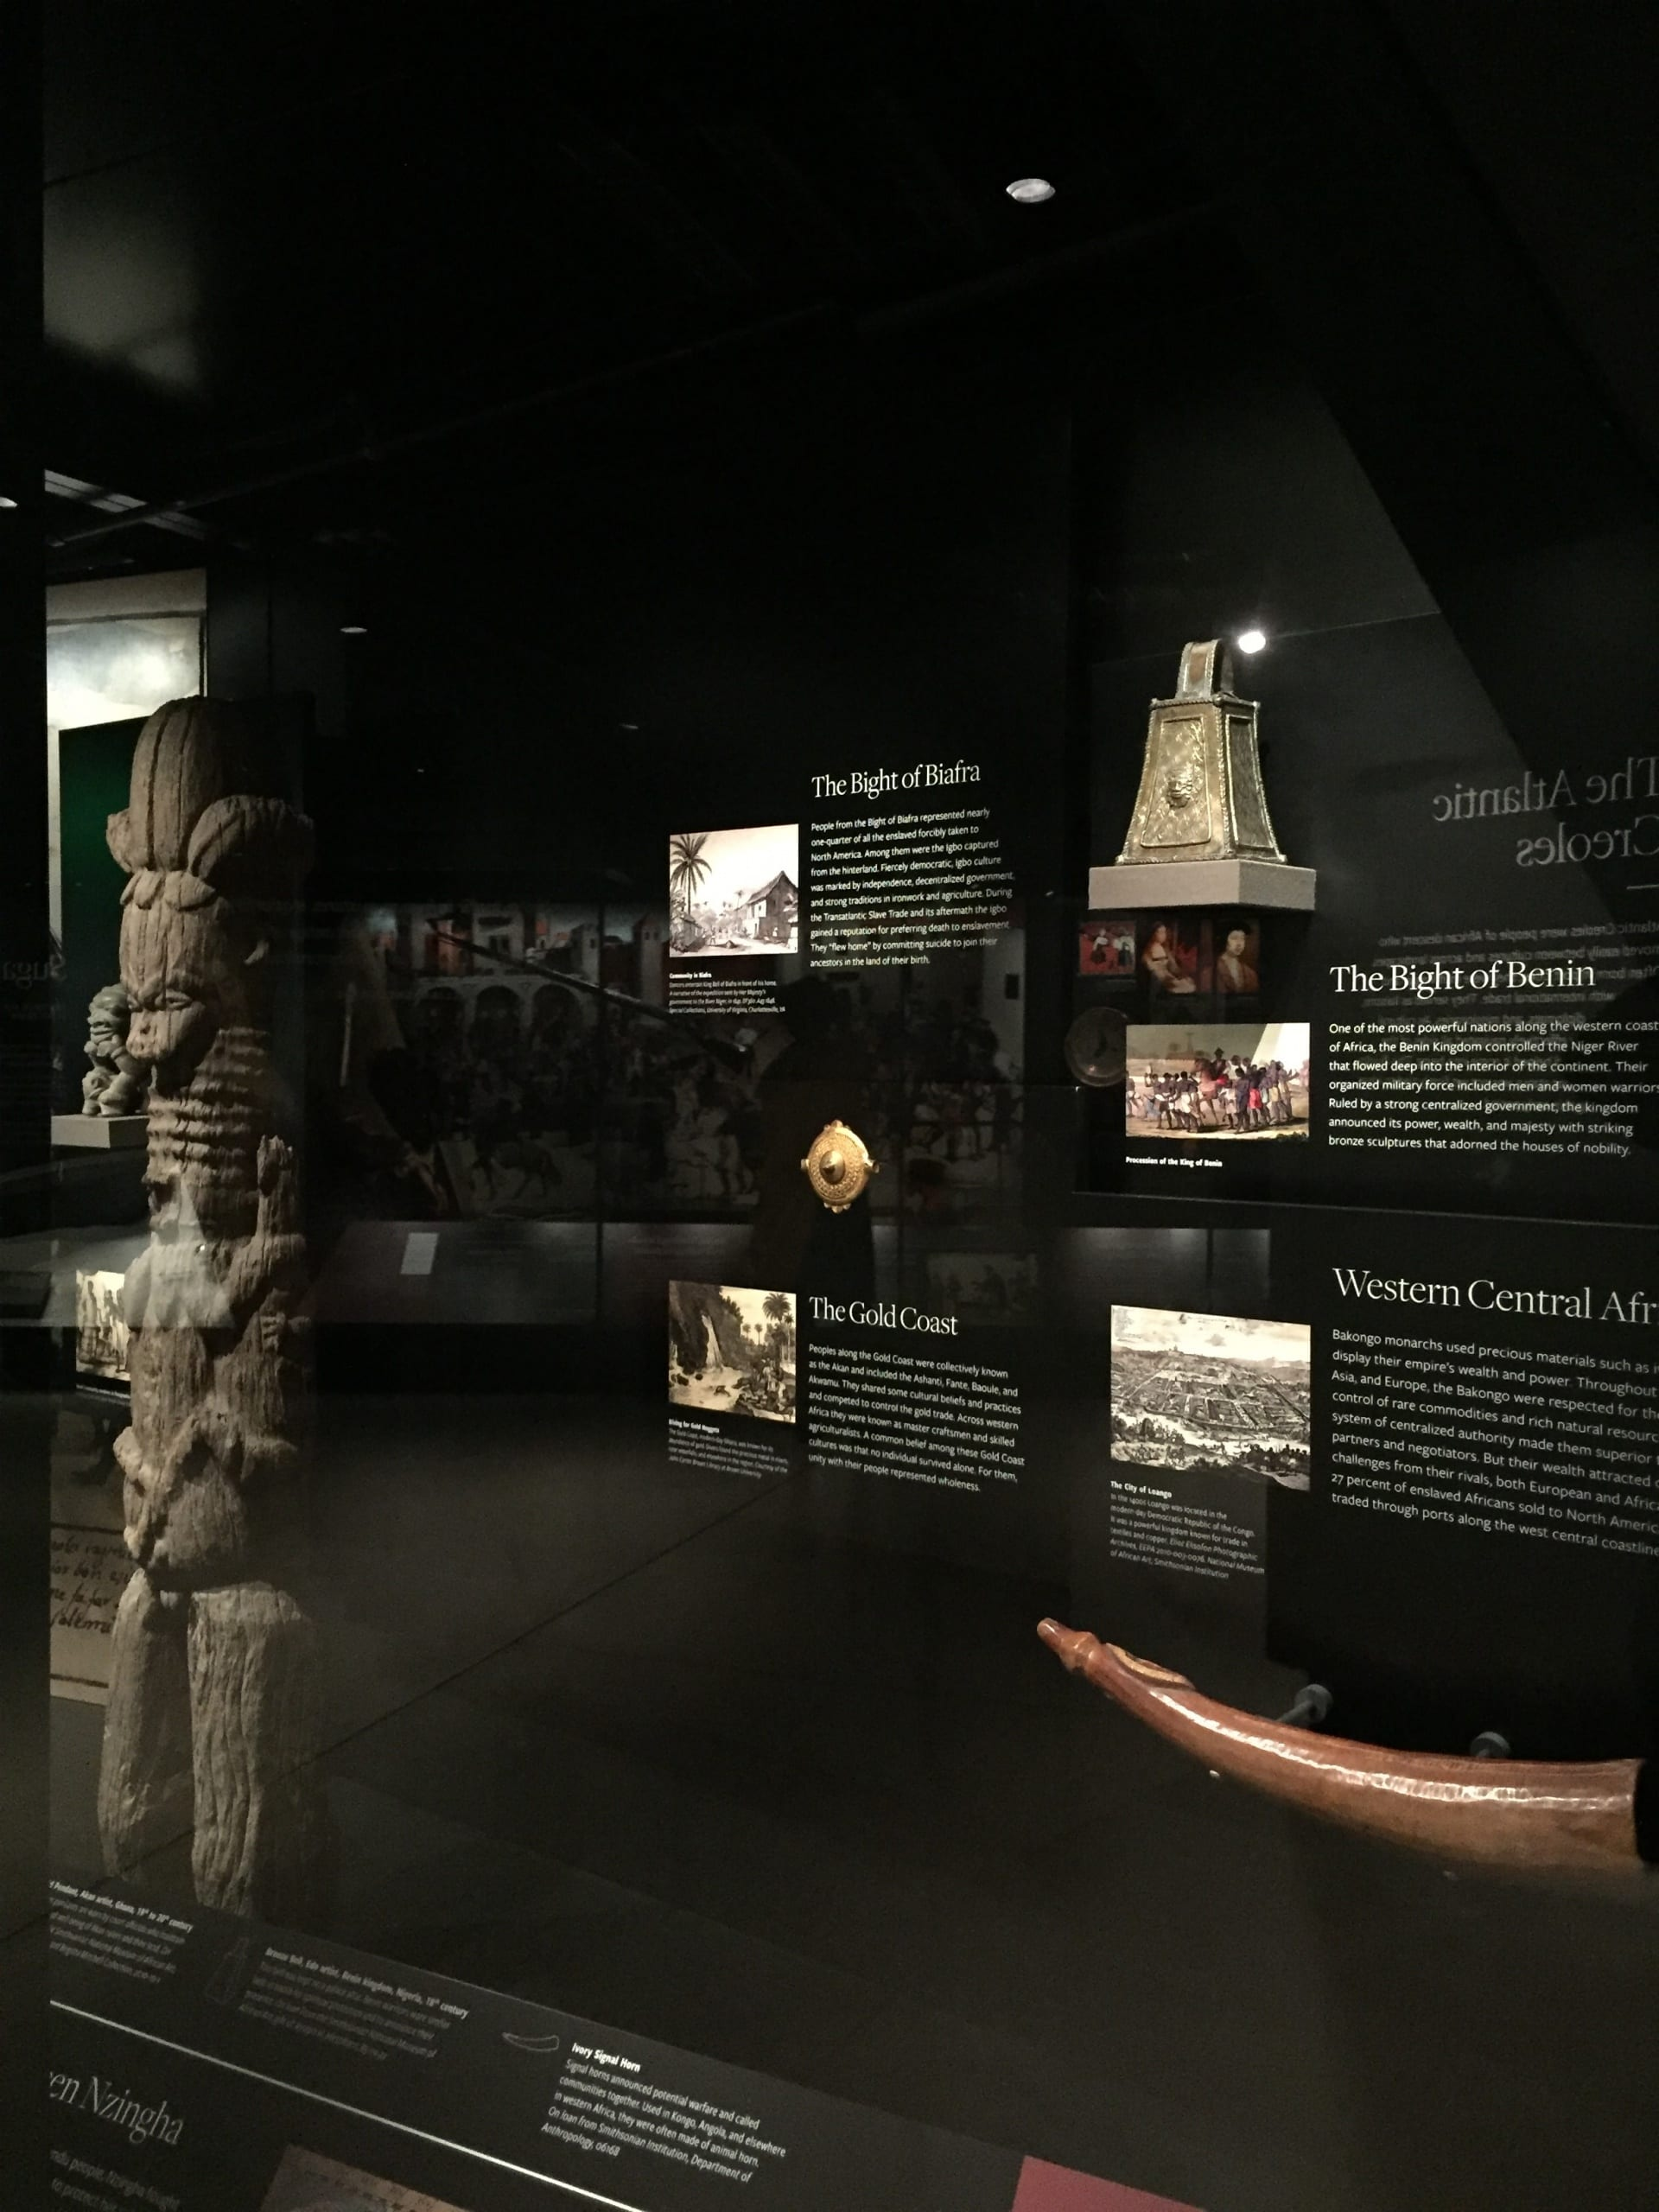 "National Museum for African American History and Culture, Smithsonian Institution, Washington D.C., 2019. ""Trading to Traded"" in the History galleries. An ivory oliphant (trumpet) in the foreground"